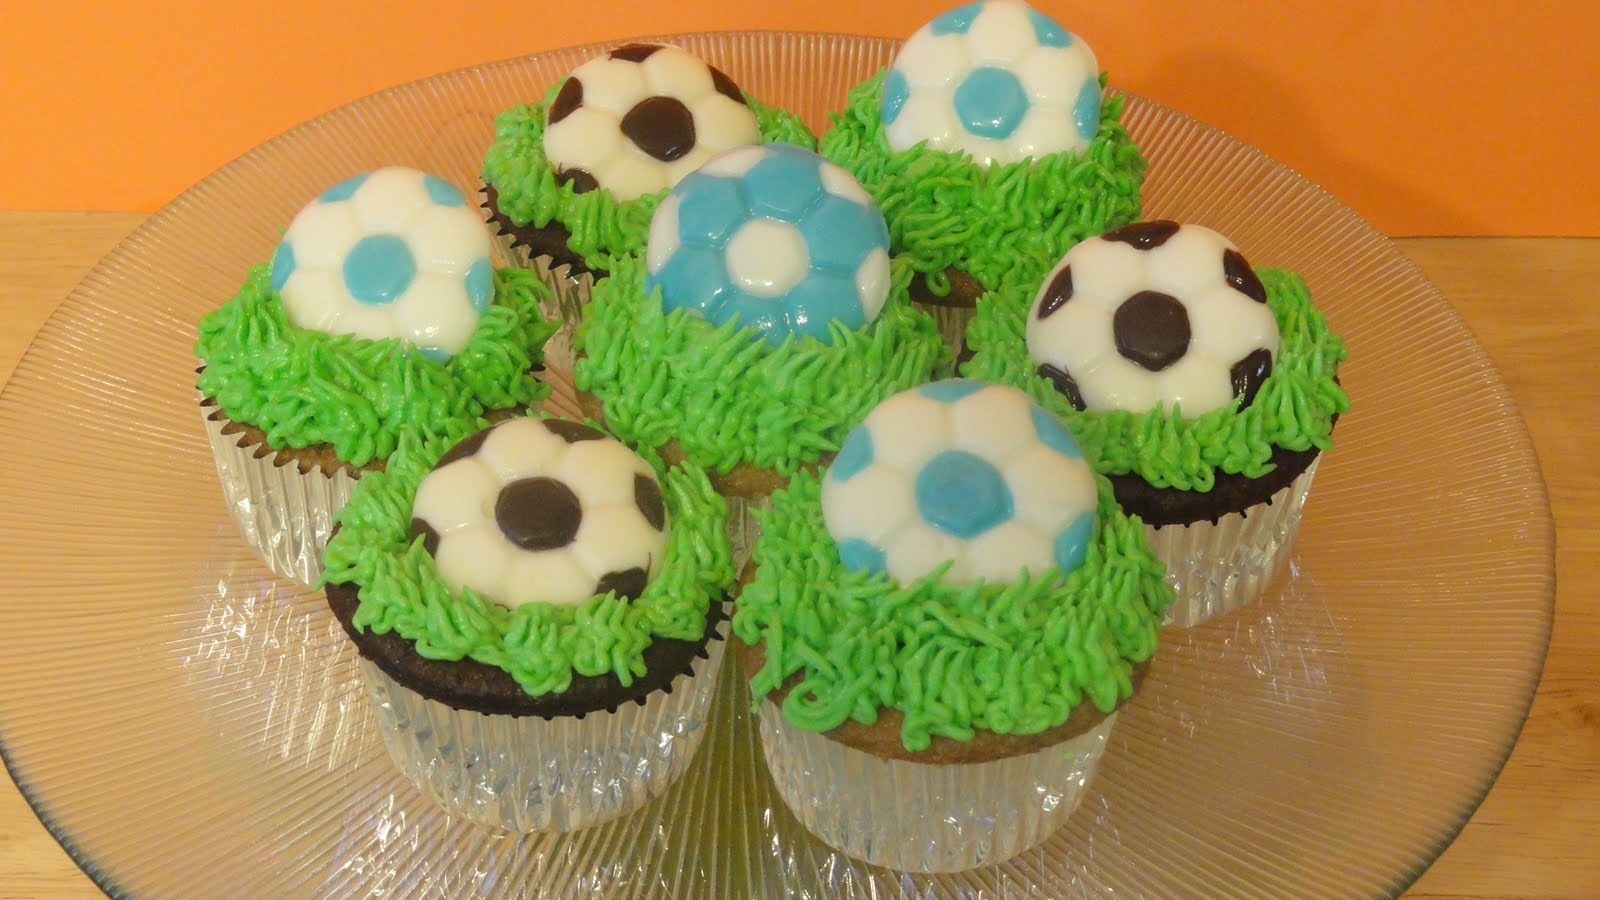 Lalas Cakes